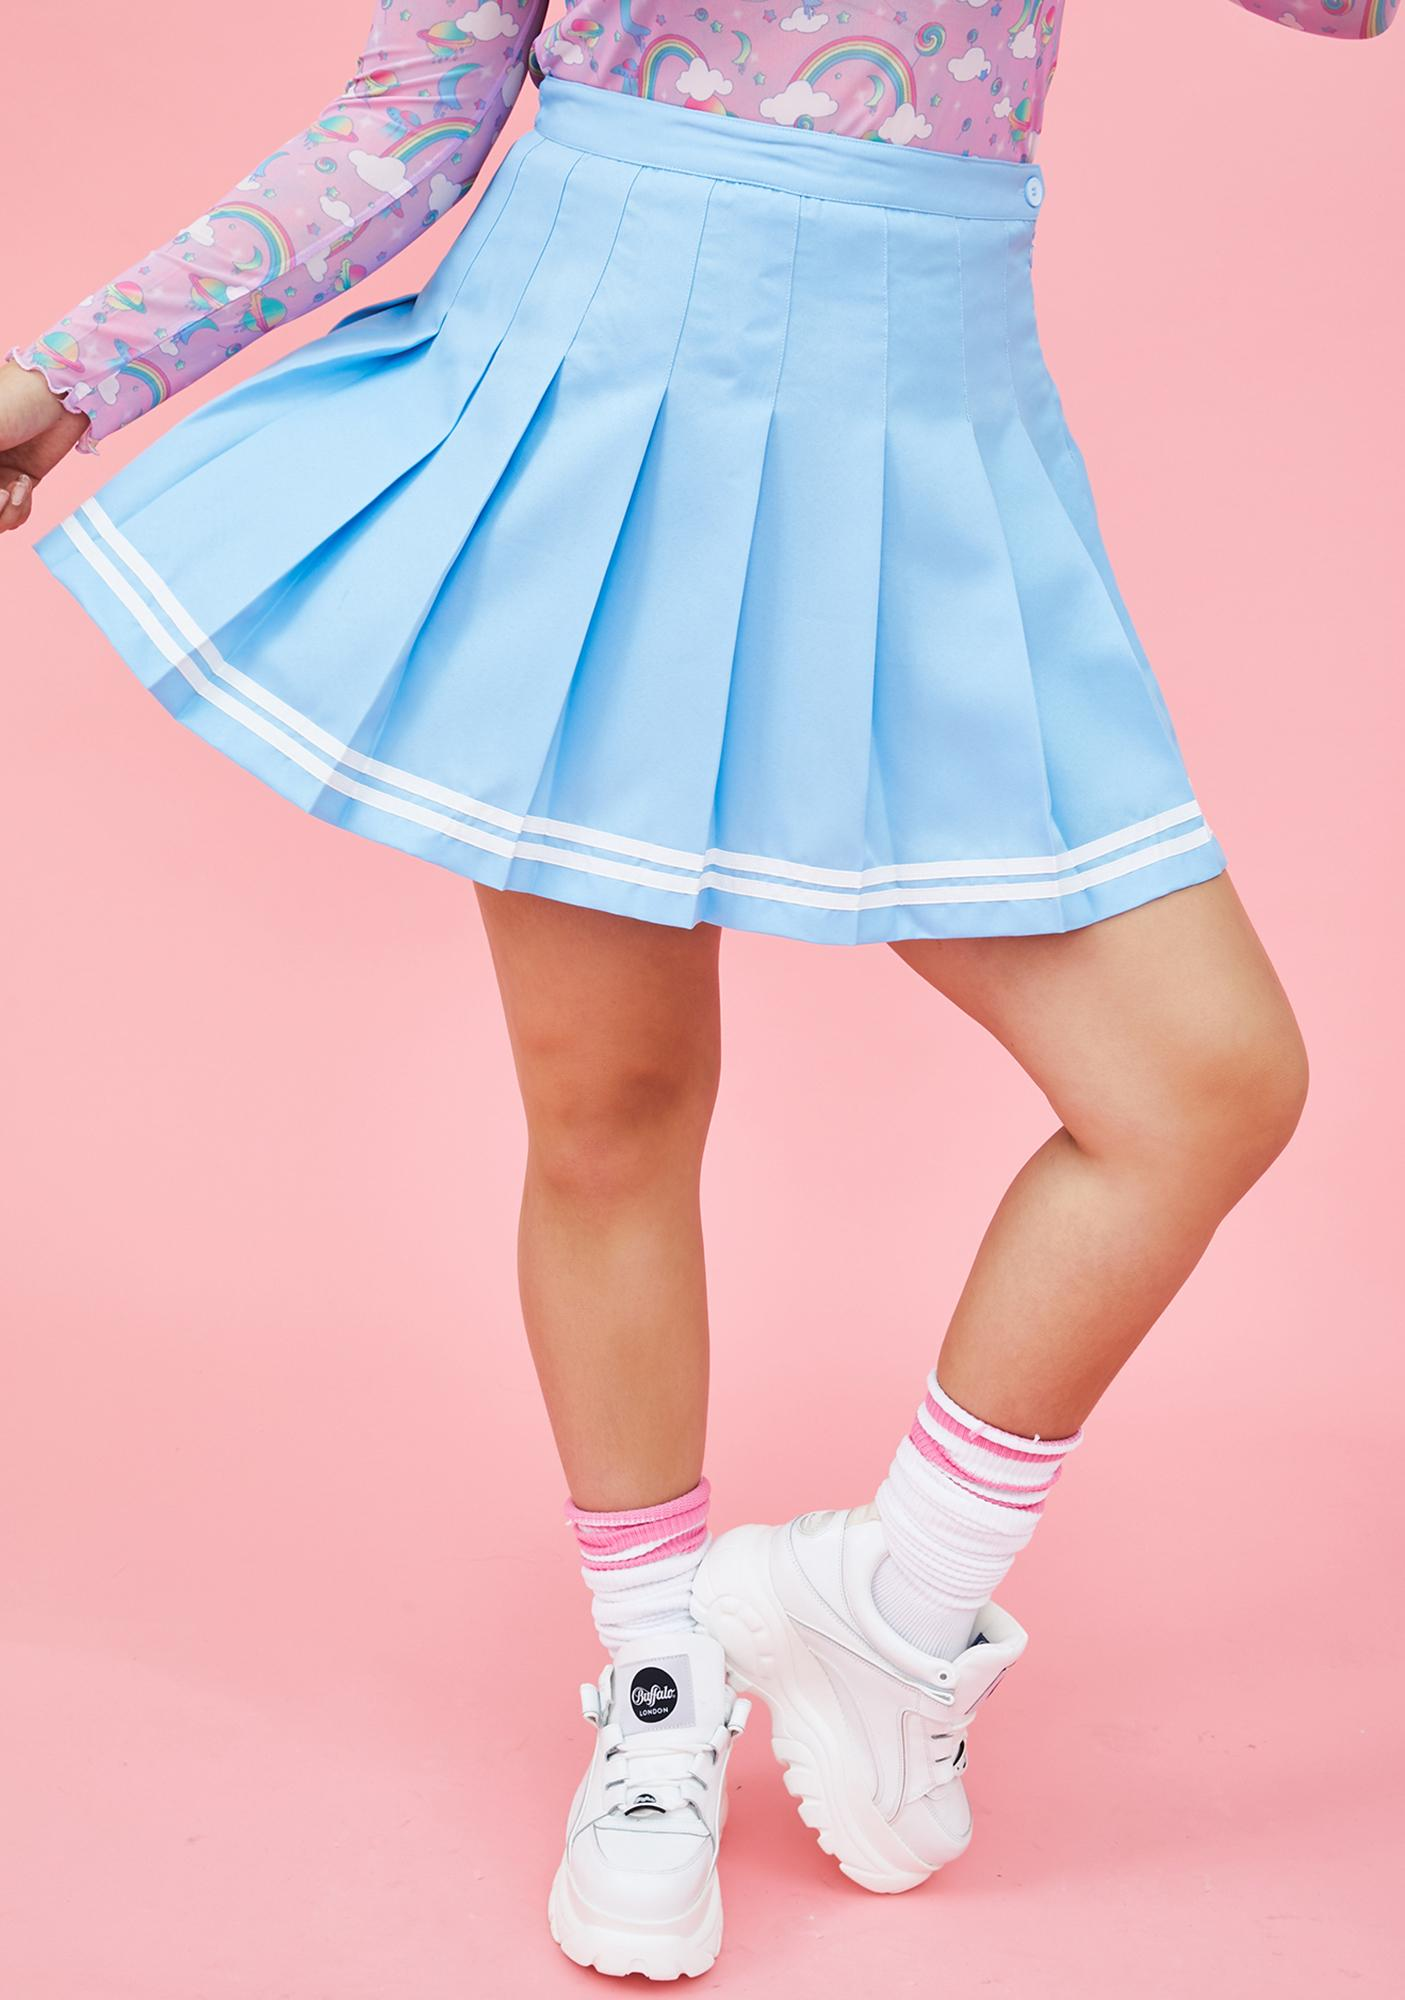 Sugar Thrillz In Cheer Bliss Pleated Mini Skirt